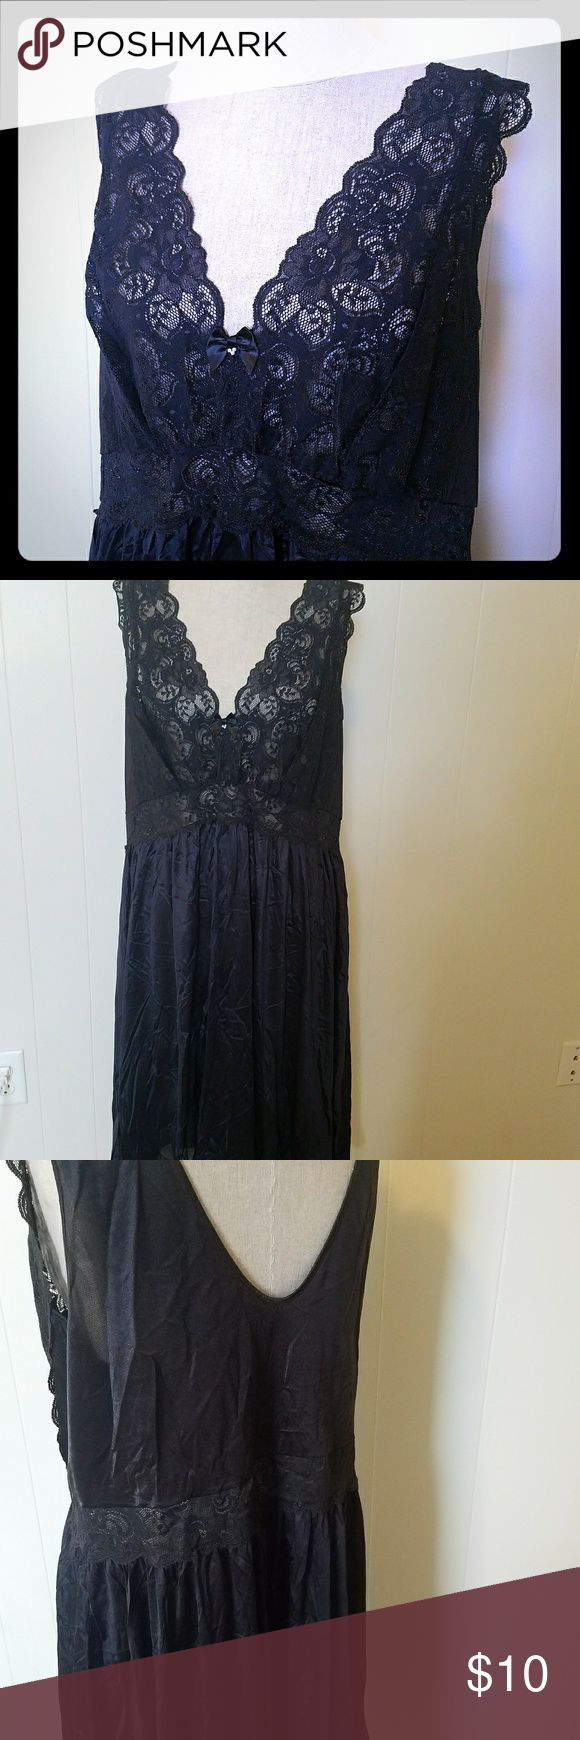 Lacey Black Nightgown Black slinky nighty with lace front, plunging neckline, and low back fits all your curves just right.  Hits at knee length. Shadowline Intimates & Sleepwear Pajamas